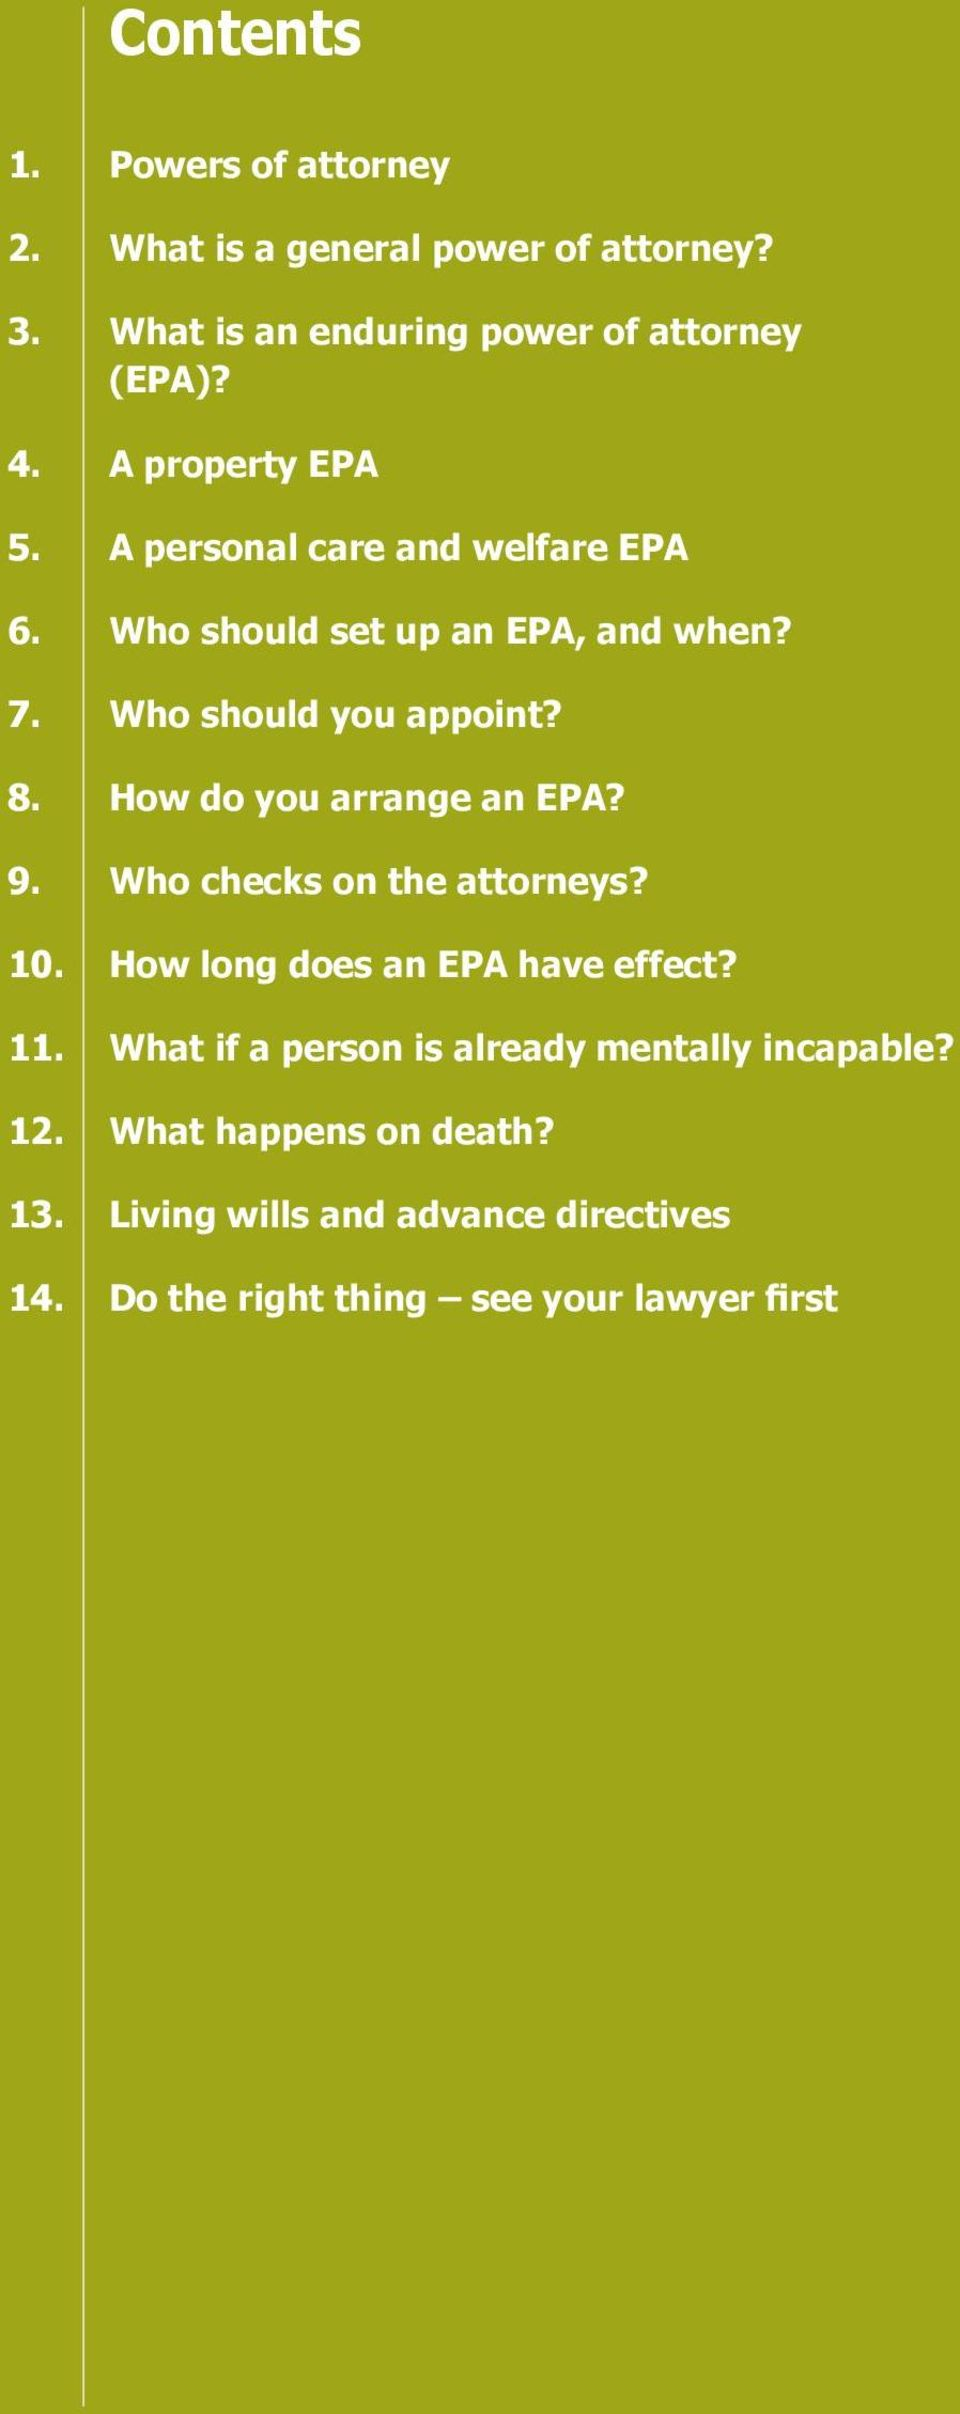 How do you arrange an EPA? 9. Who checks on the attorneys? 10. How long does an EPA have effect? 11.